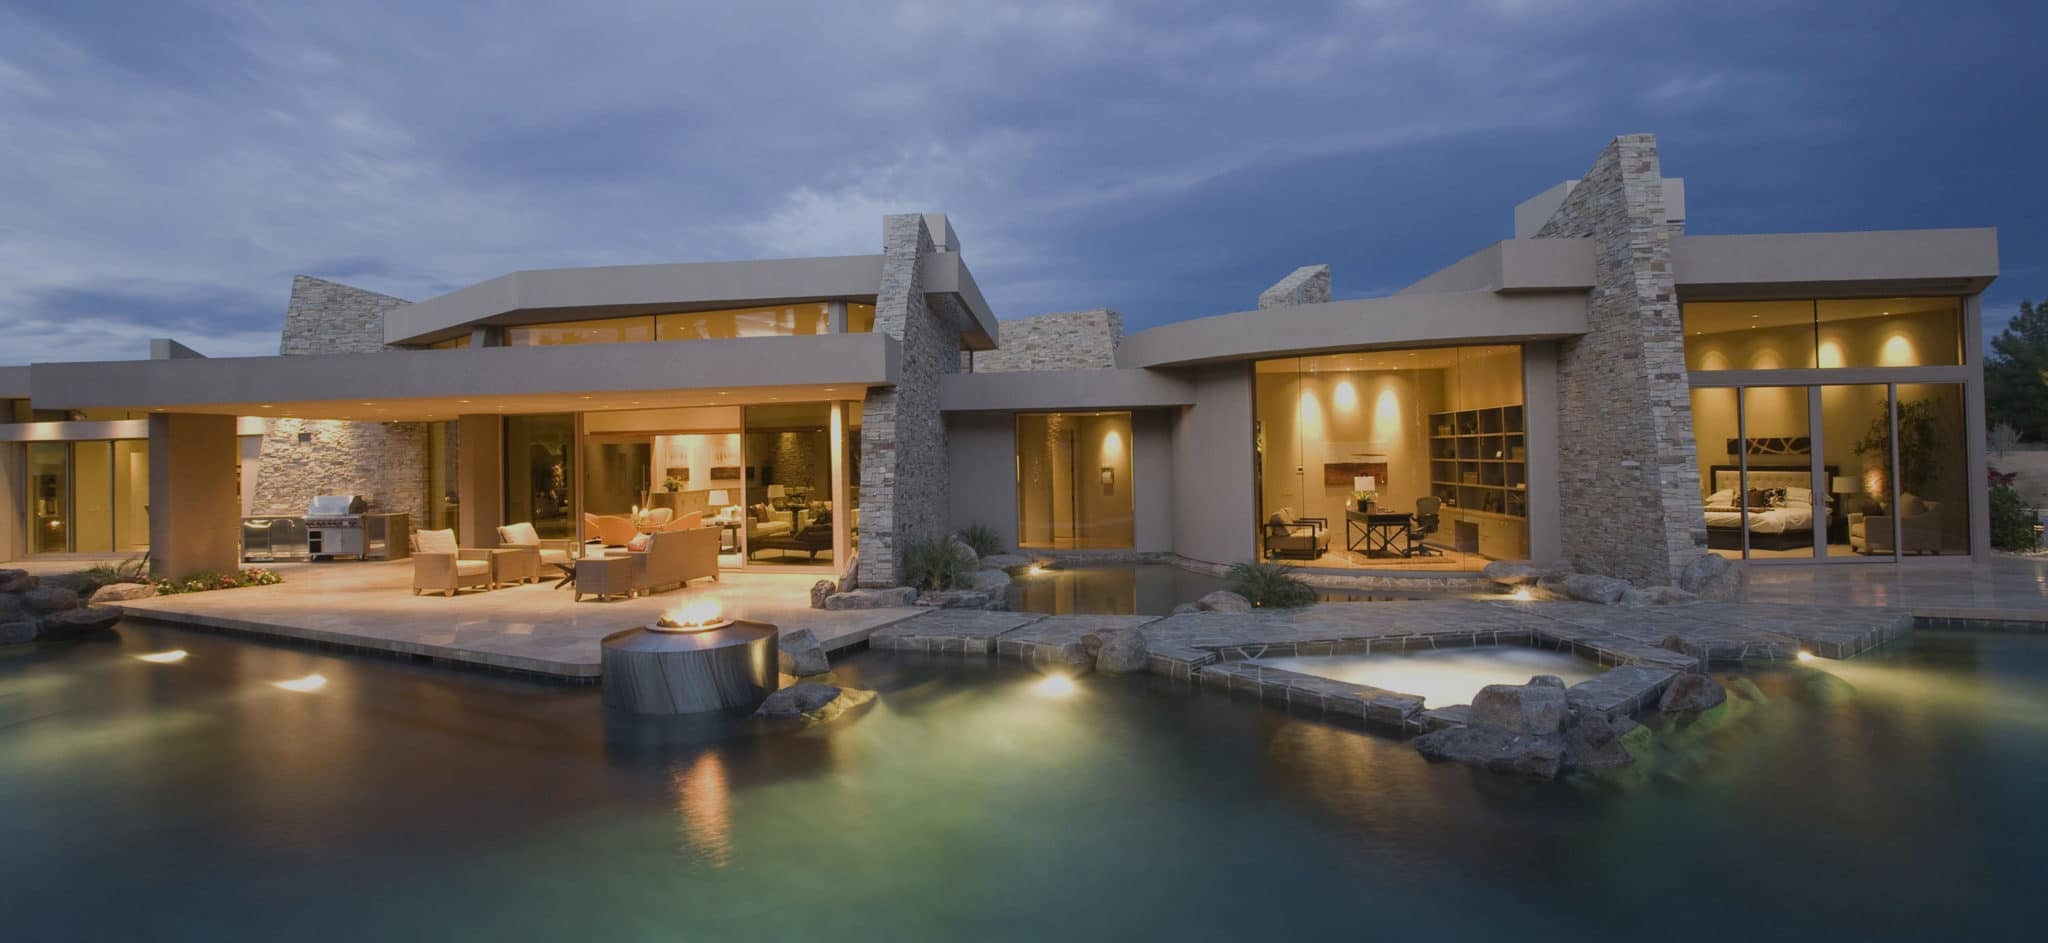 RBC-design-build_Palm_Desert_CA